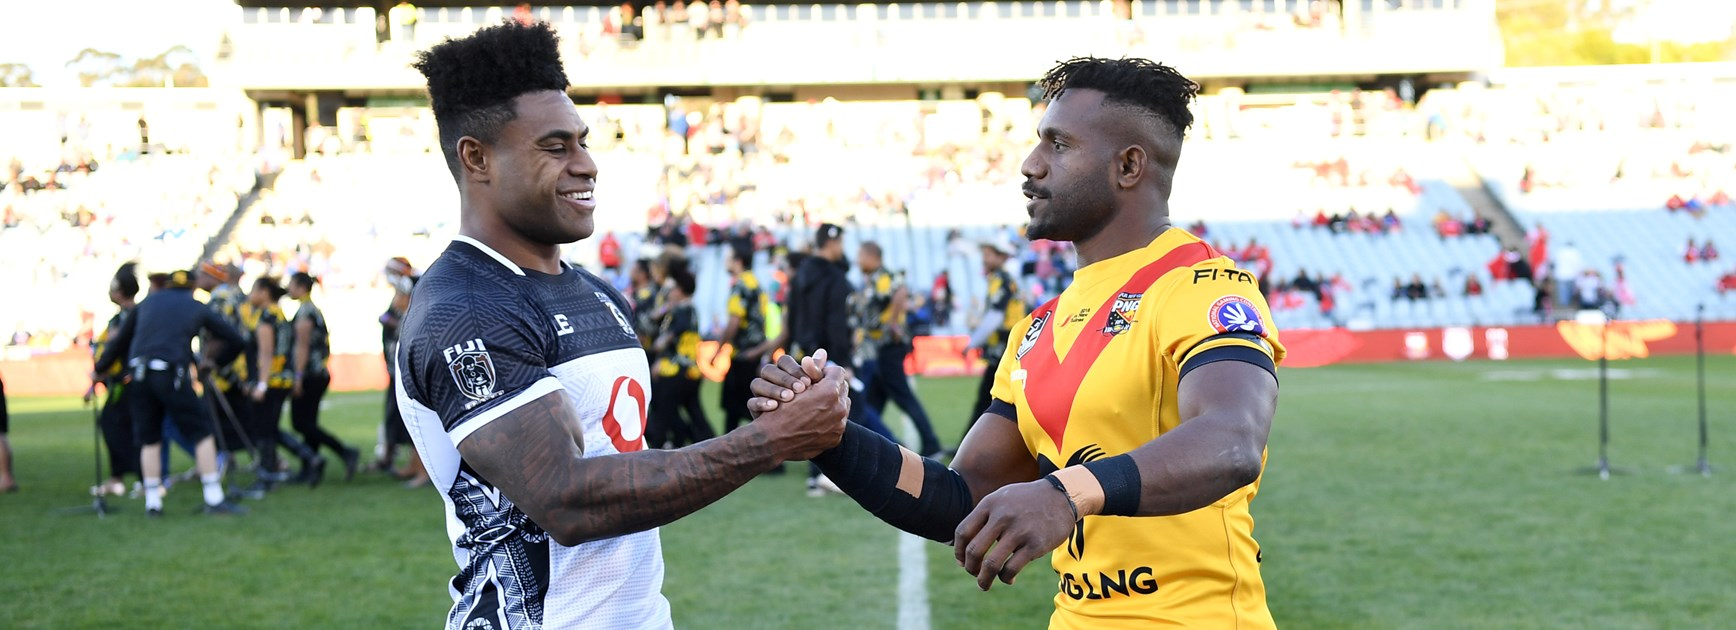 Papua New Guinea stun Fiji with first half blitz.